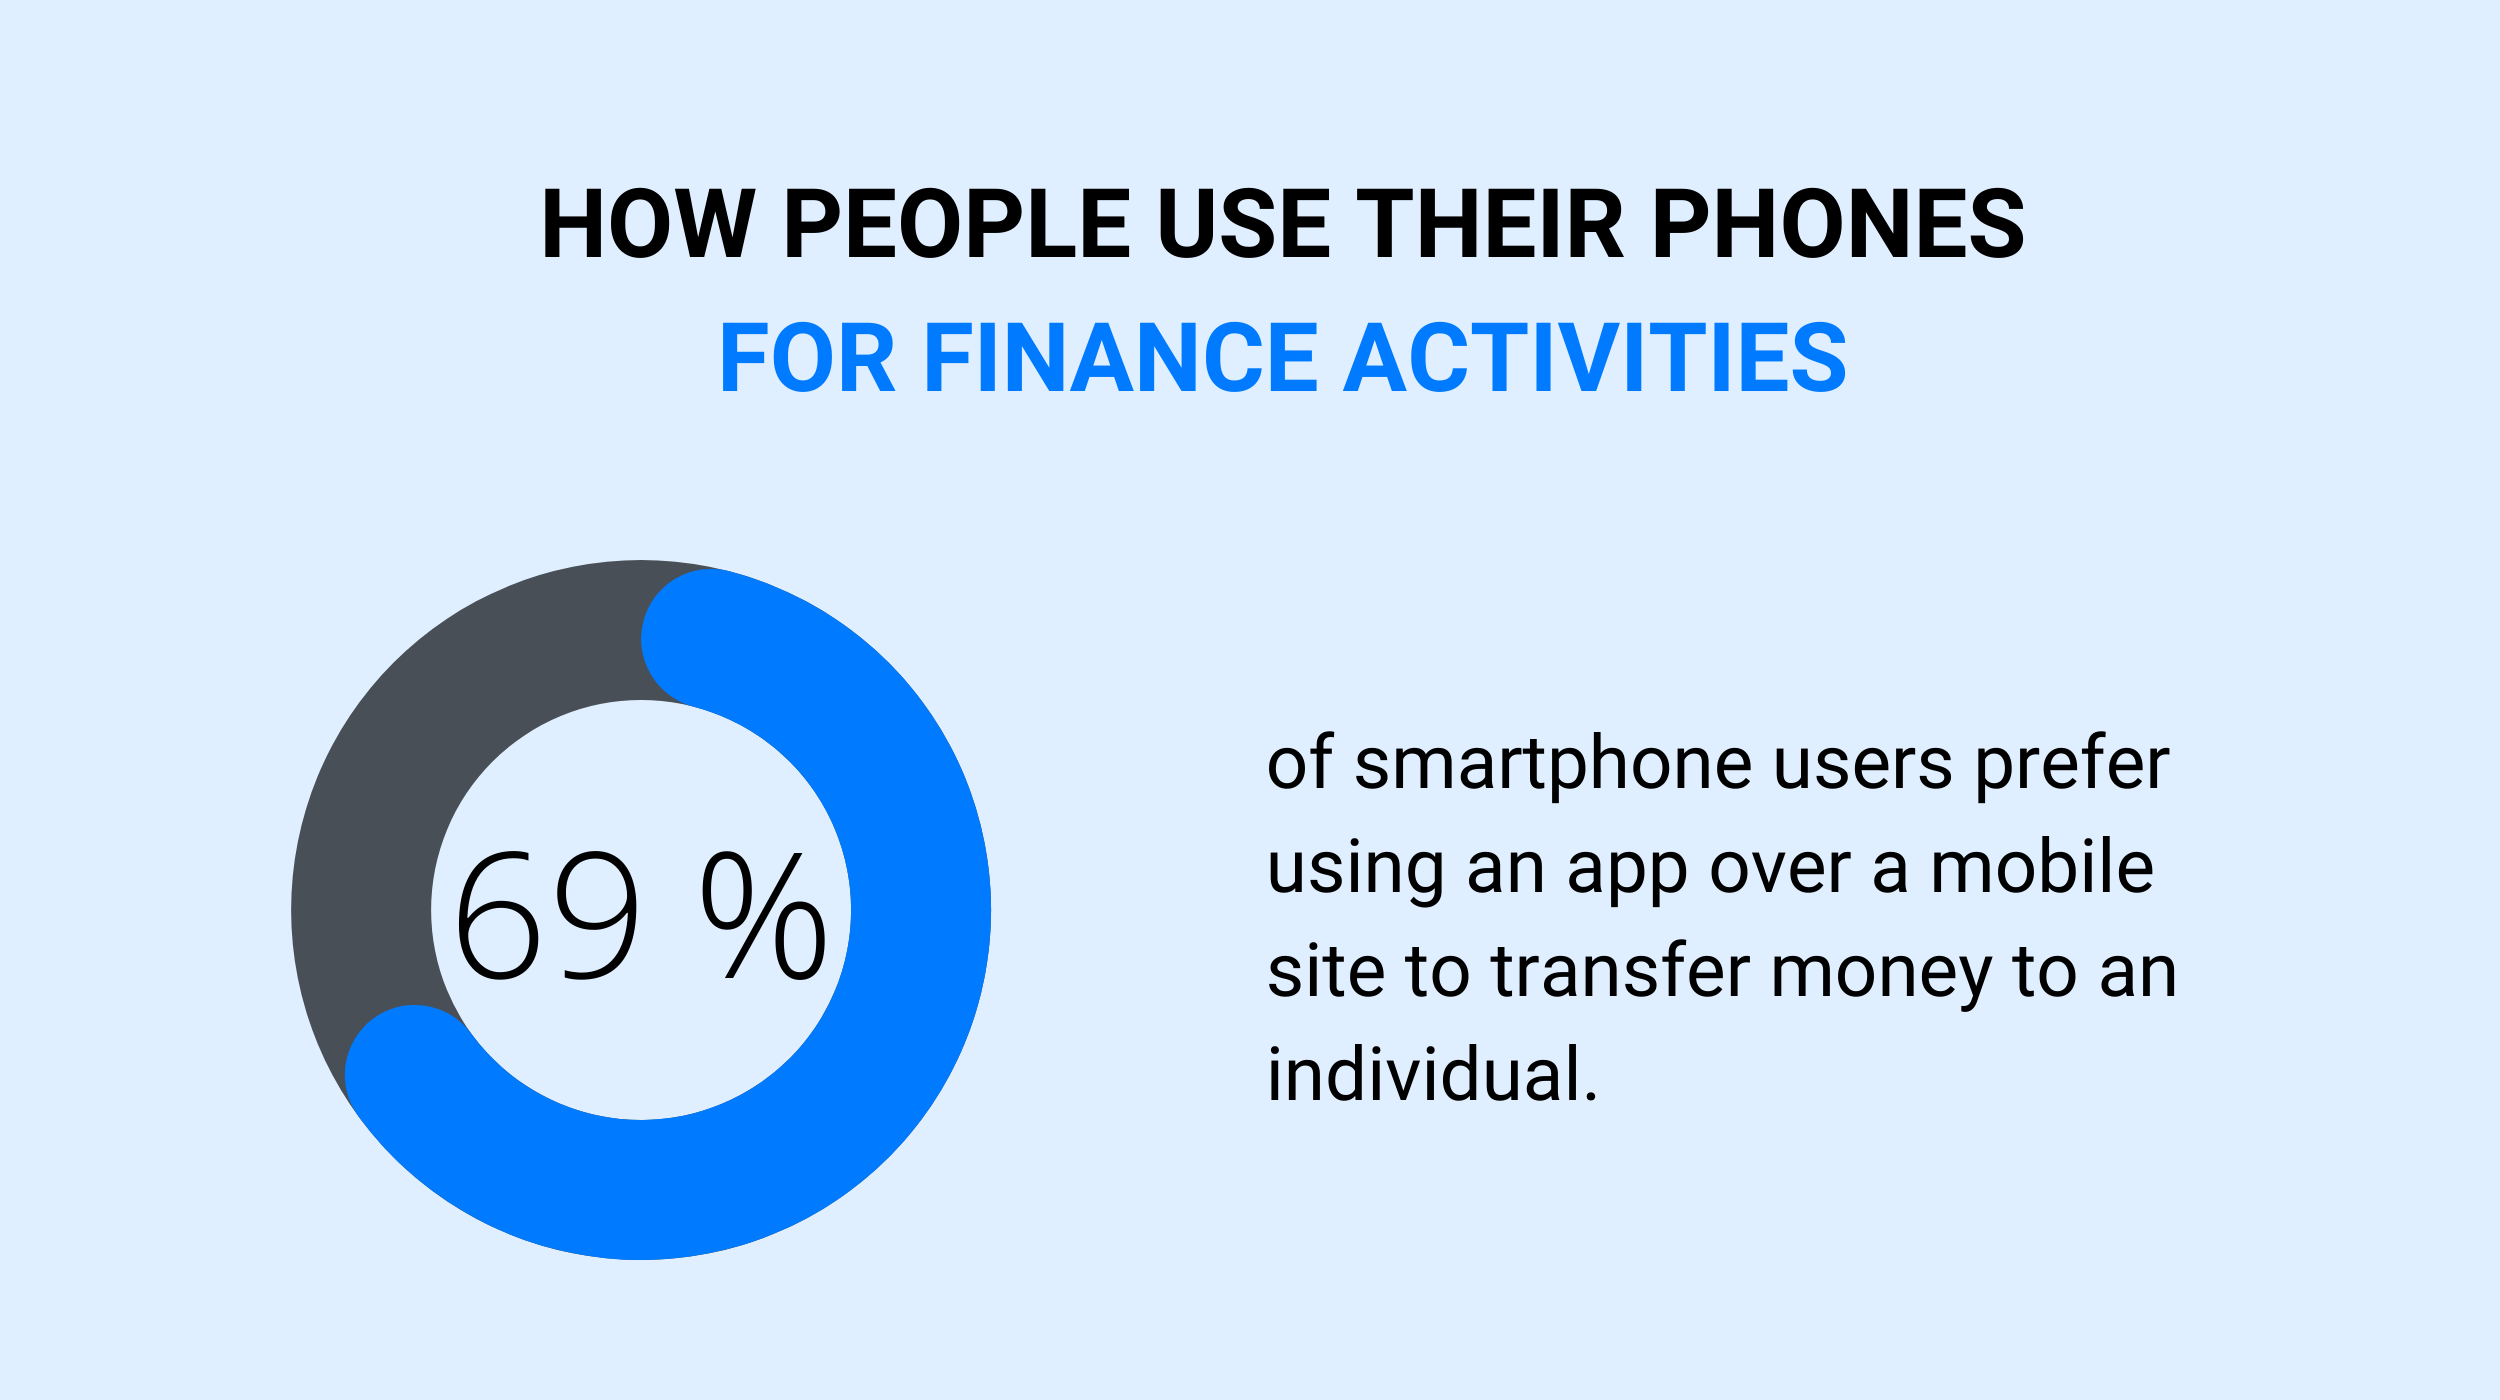 How People Use Their Phones for Finance Activities